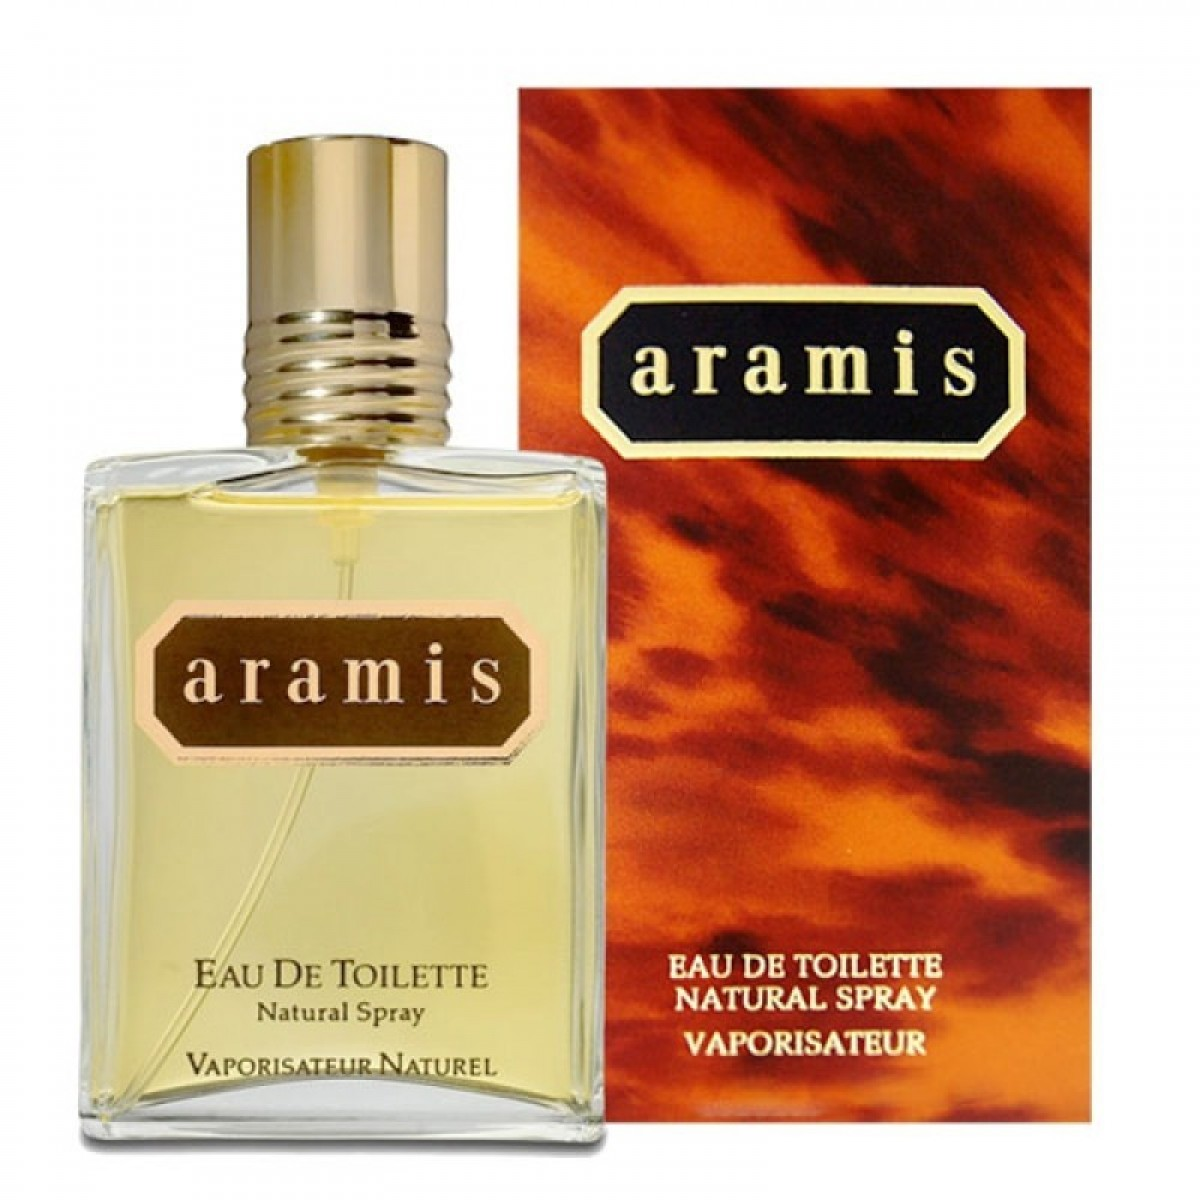 Aramis Brown For Men Eau De Toilette 110ml Perfumes for Men & Women ratans